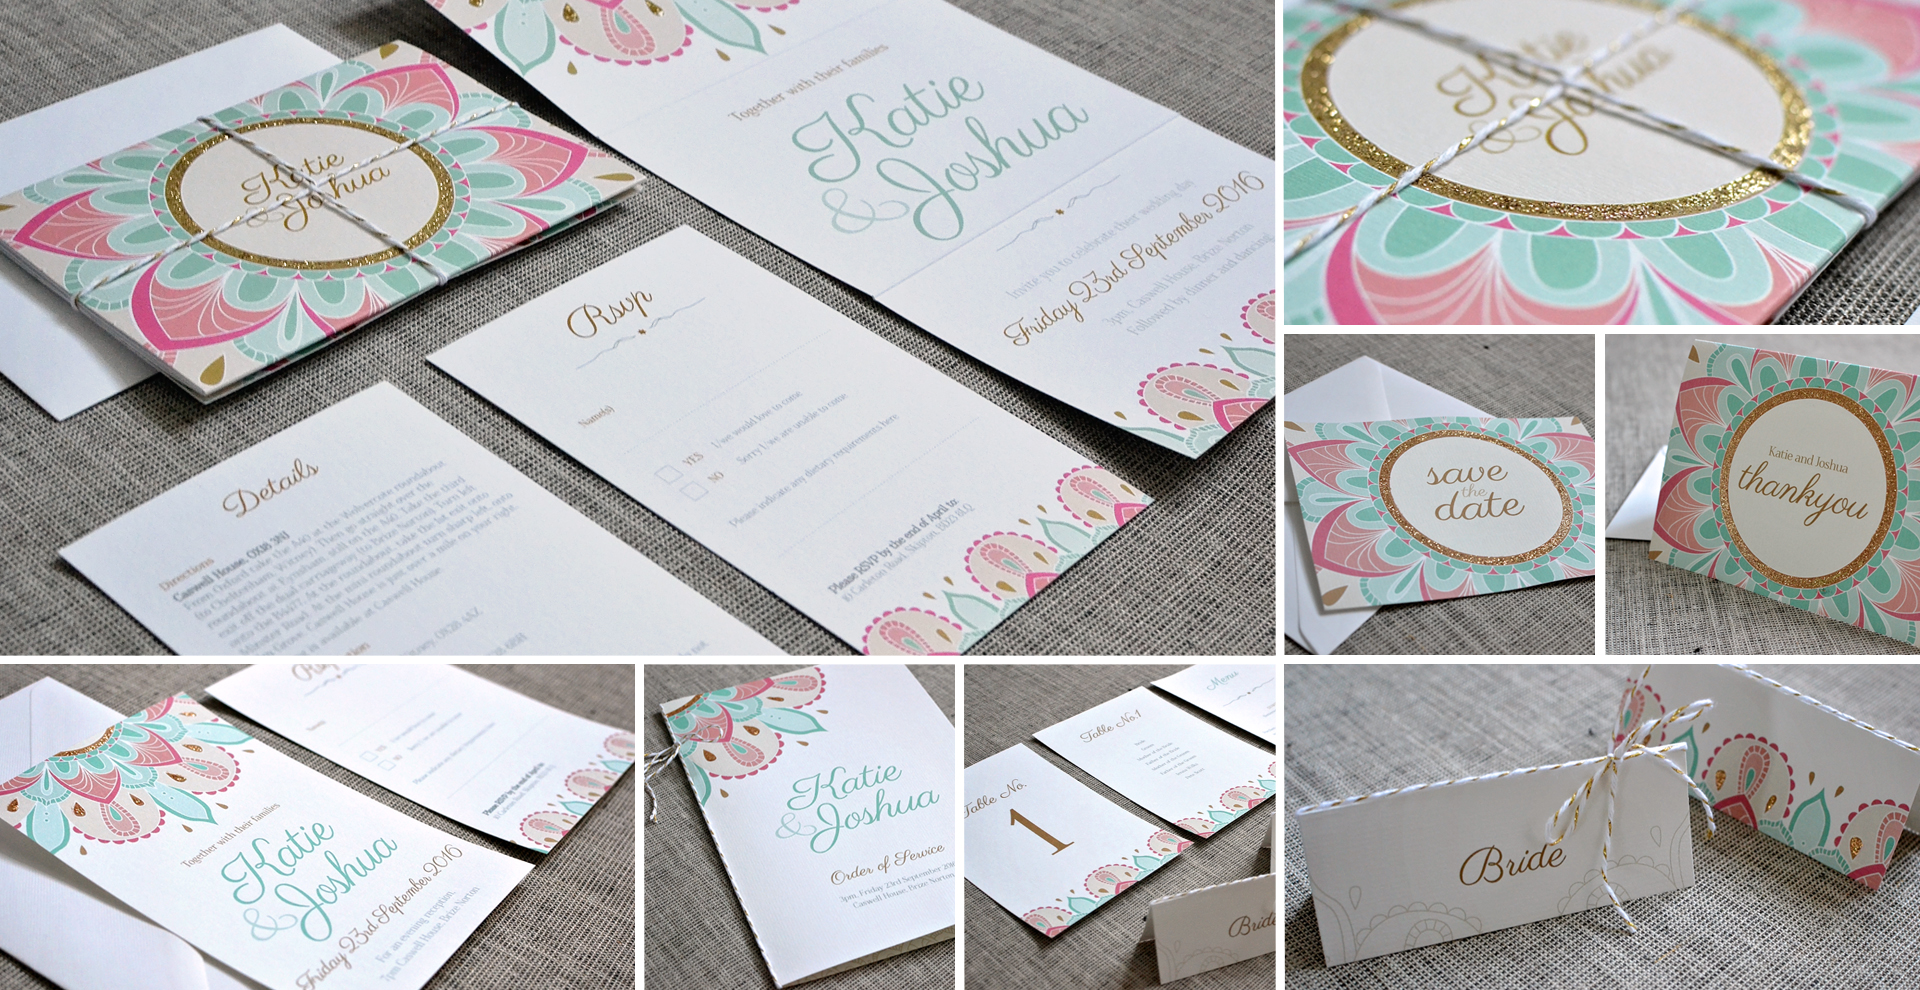 Indian wedding invitation and stationery